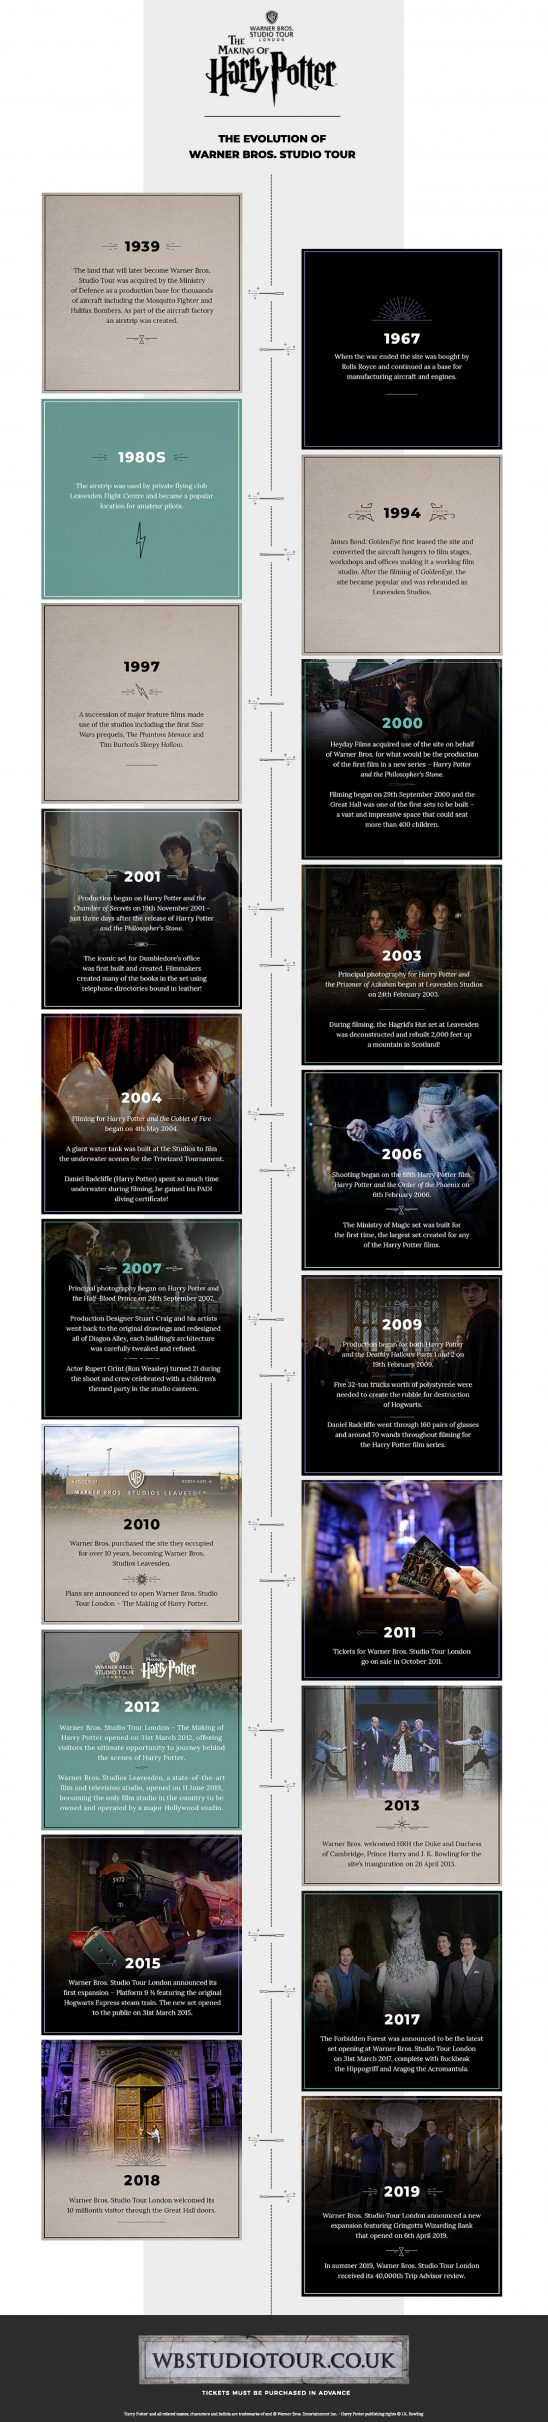 New infographic on the Warner Bros. Studio Tour charts history of Harry Potter film series